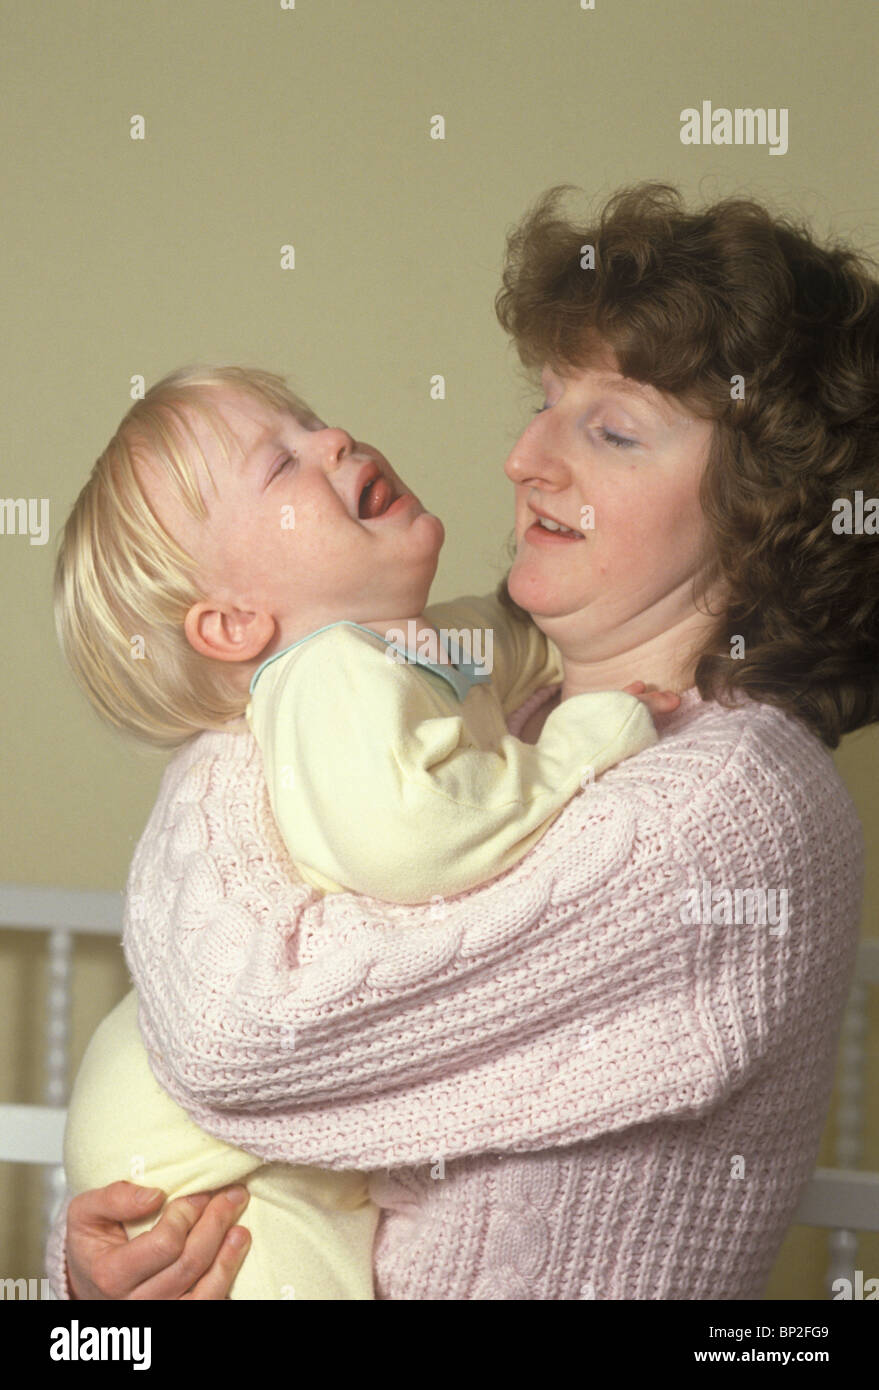 mother holding struggling toddler in throes of tantrum - Stock Image